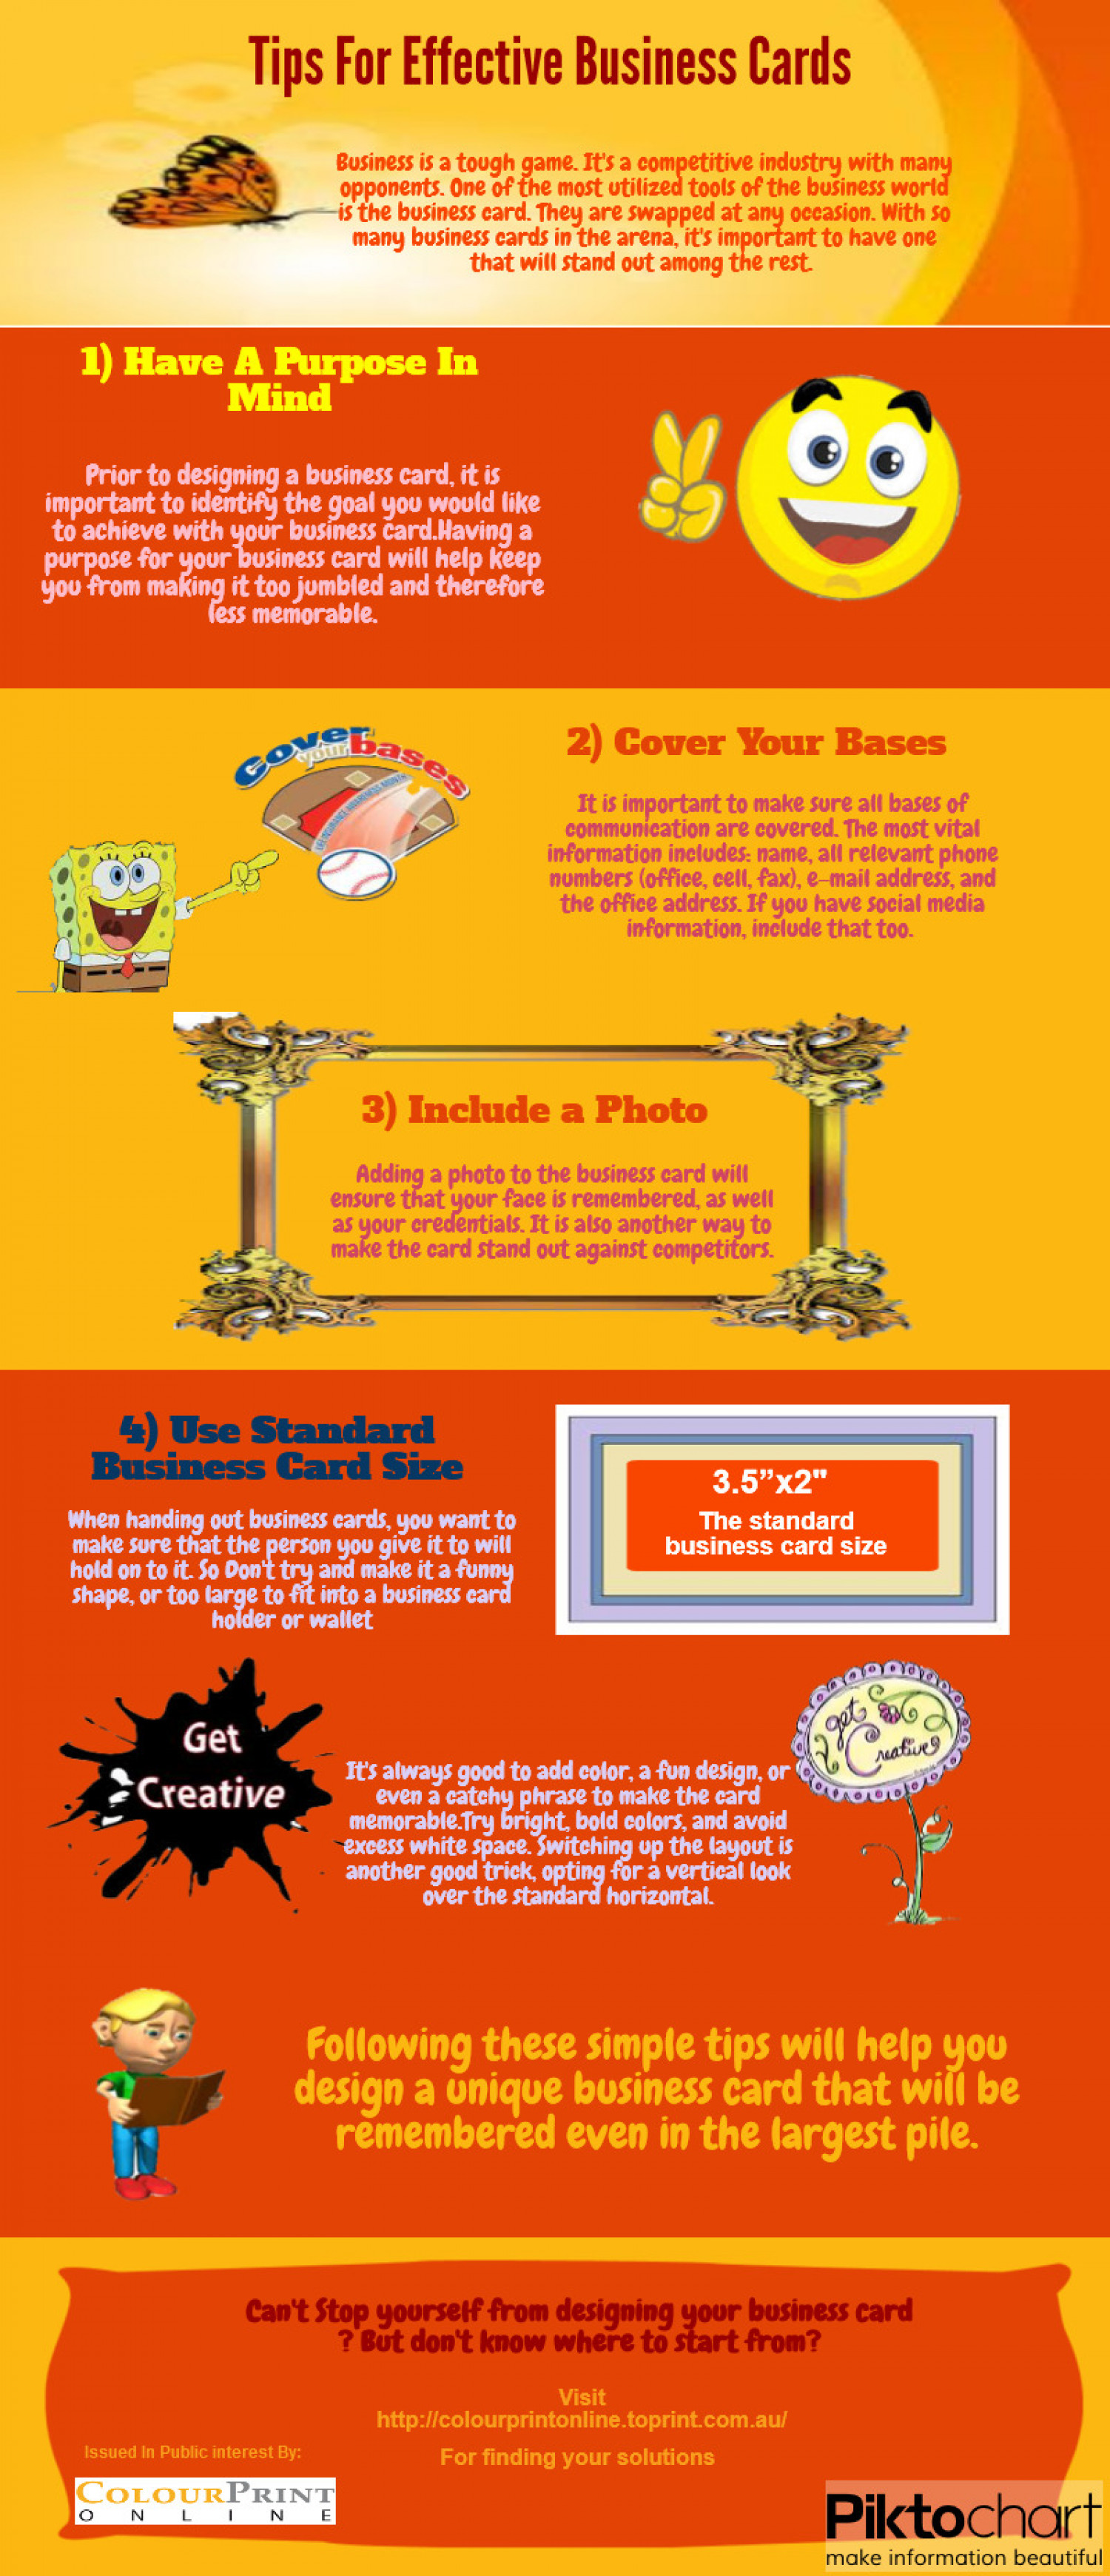 Tips For Effective Business Cards Infographic